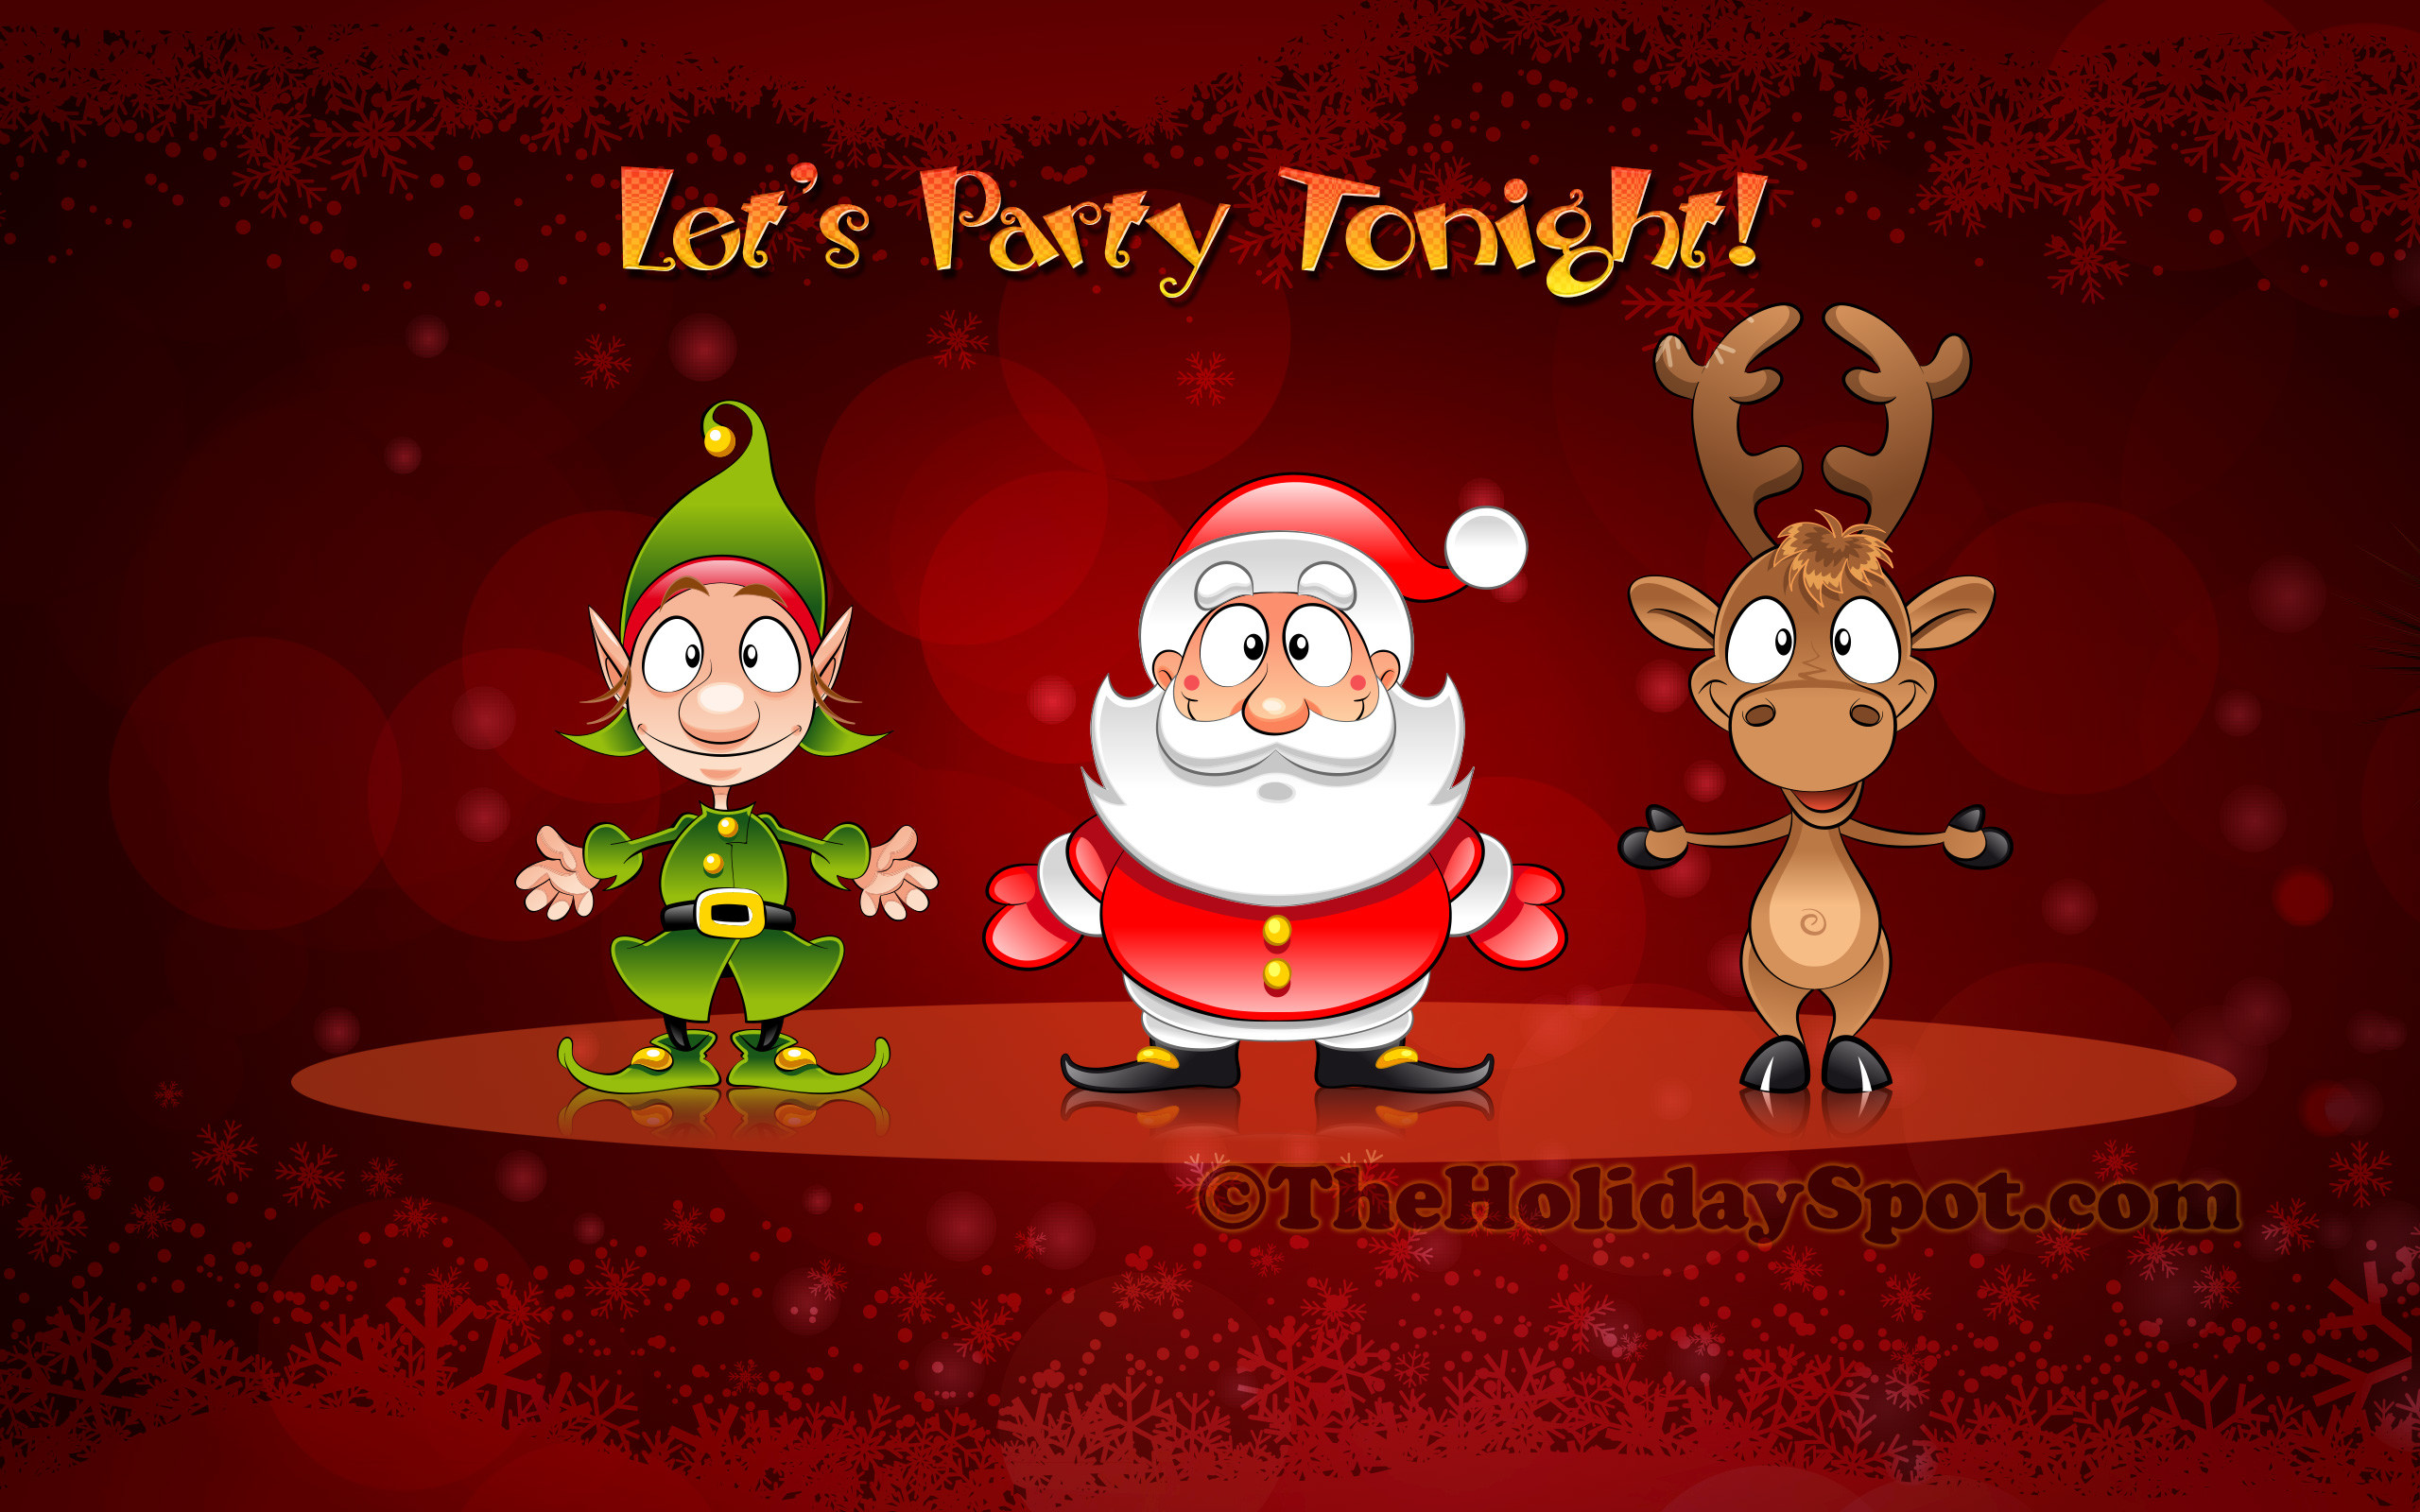 1920x1080 Image Gallery Of Cute Santa Claus Wallpapers 1920A 1080 46